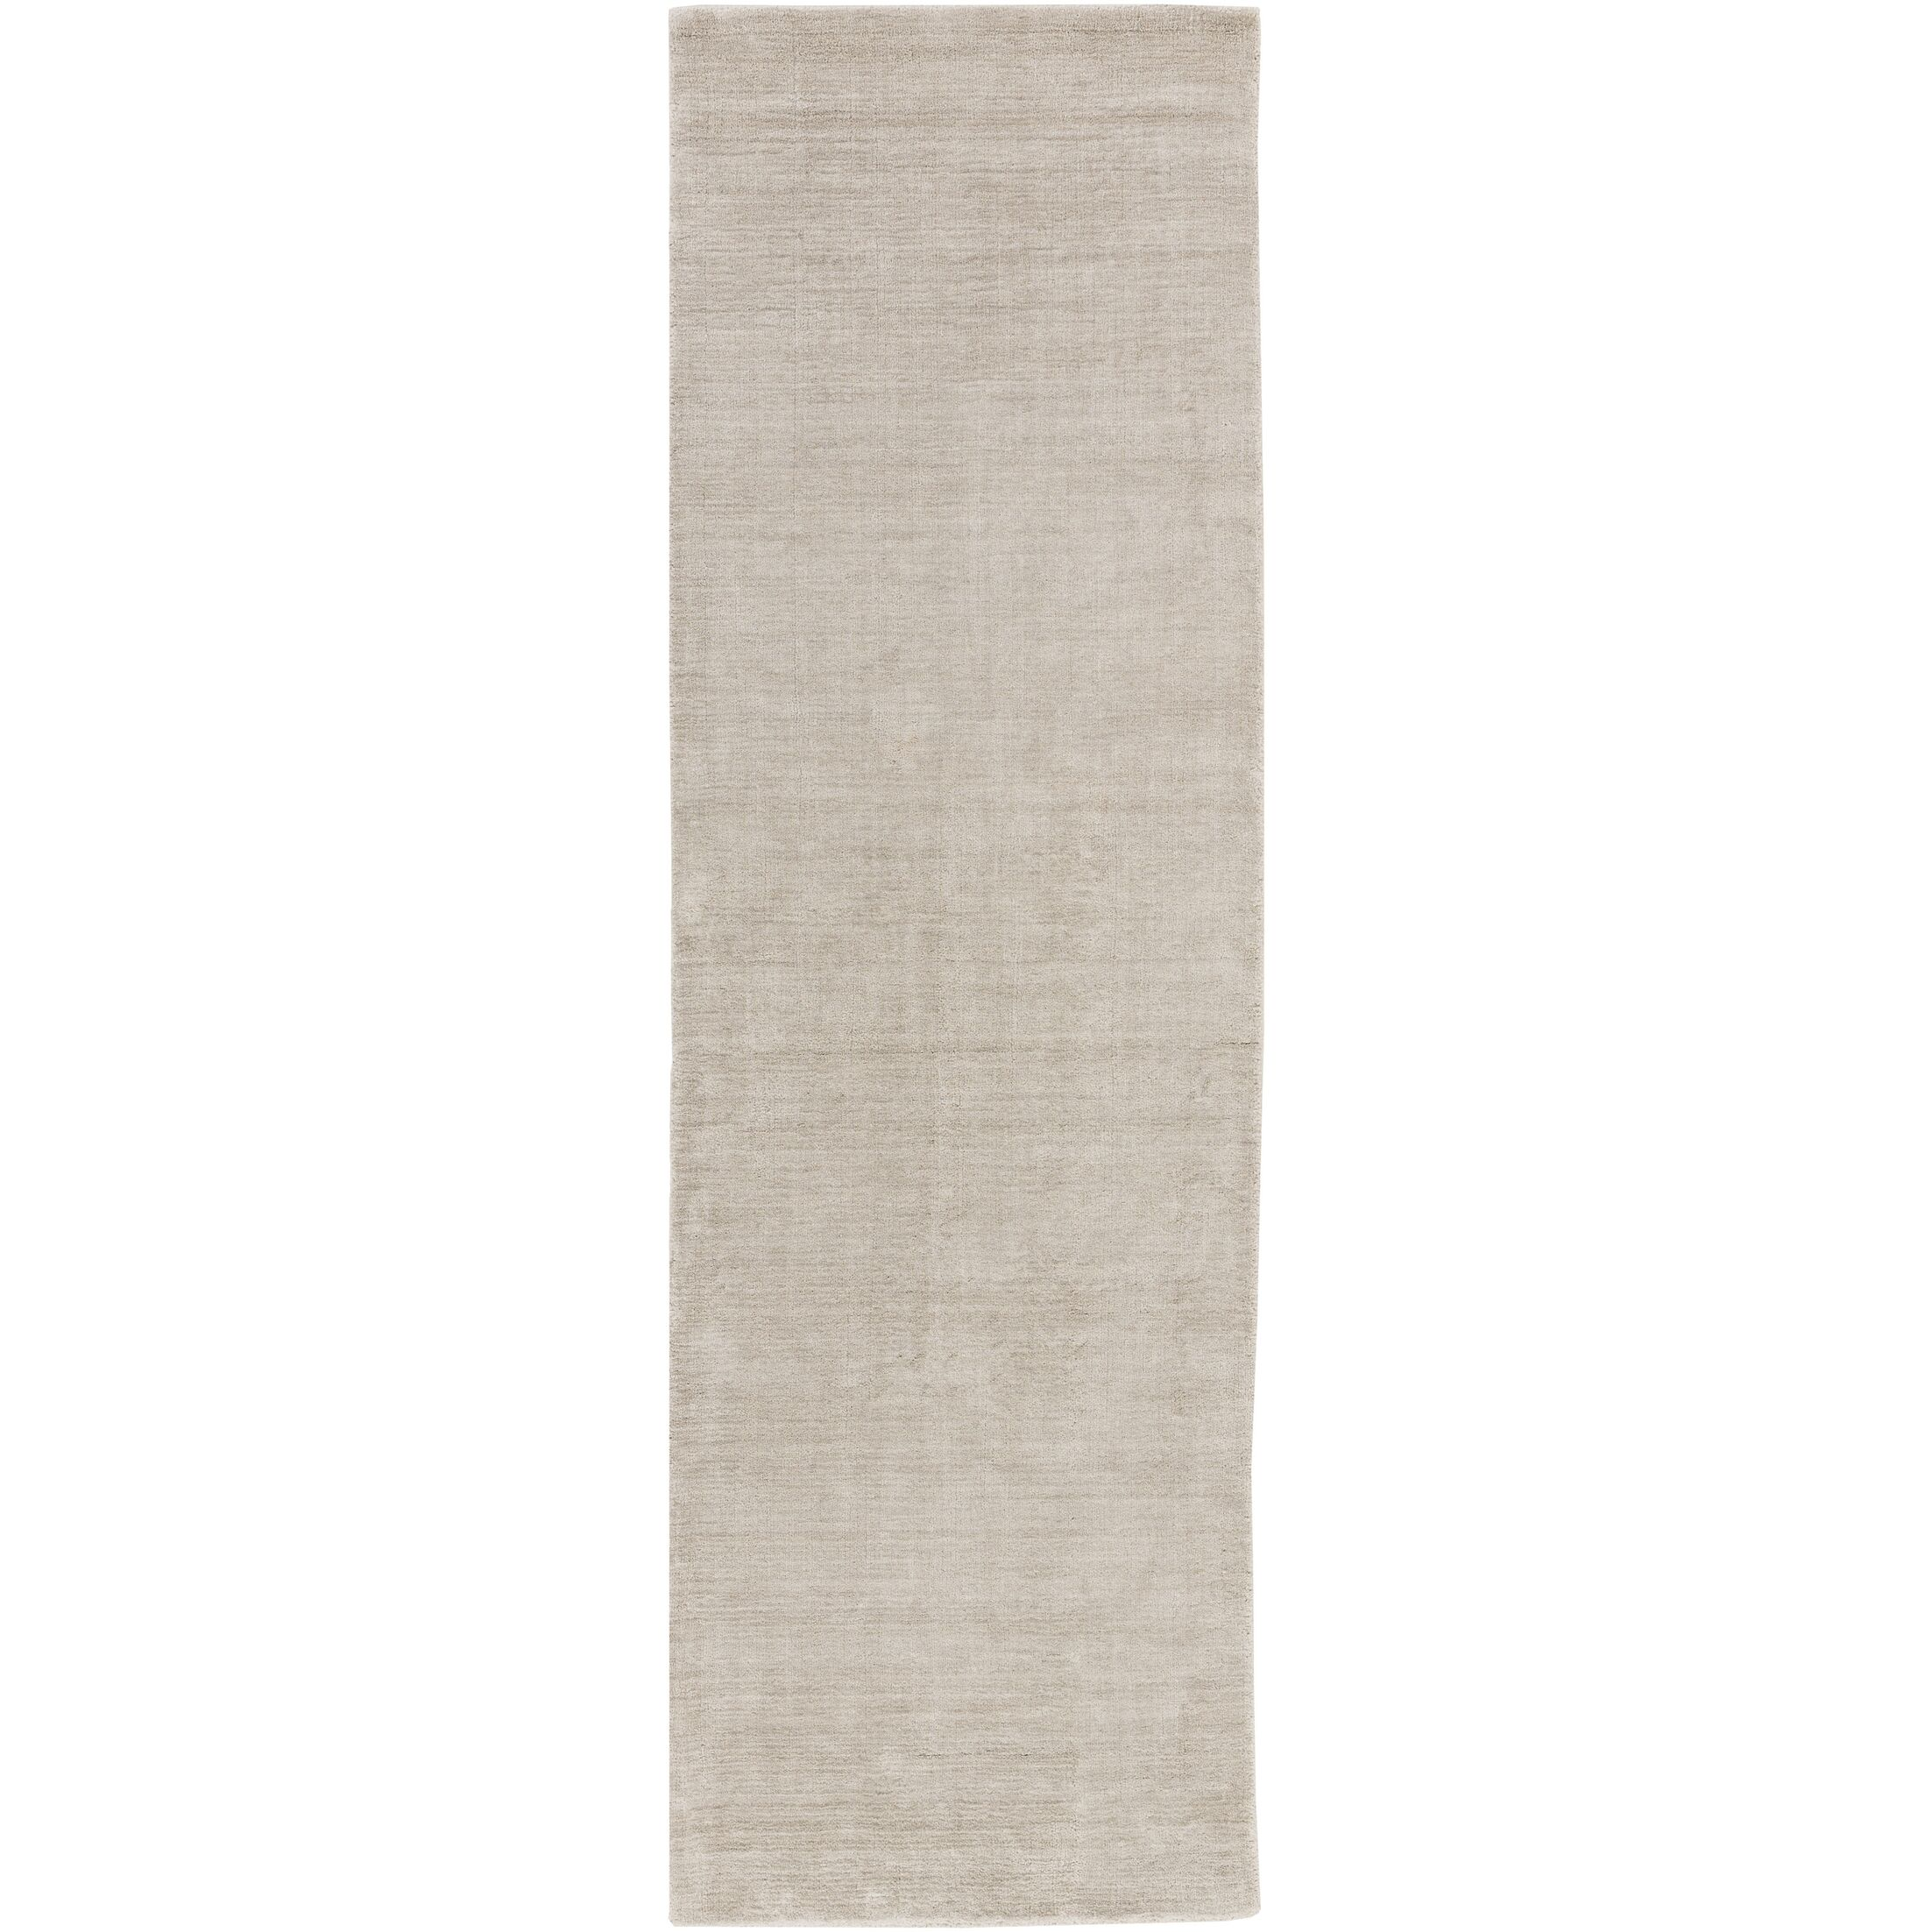 Racine Hand-Loomed Light Gray Area Rug Rug Size: Runner 2'6